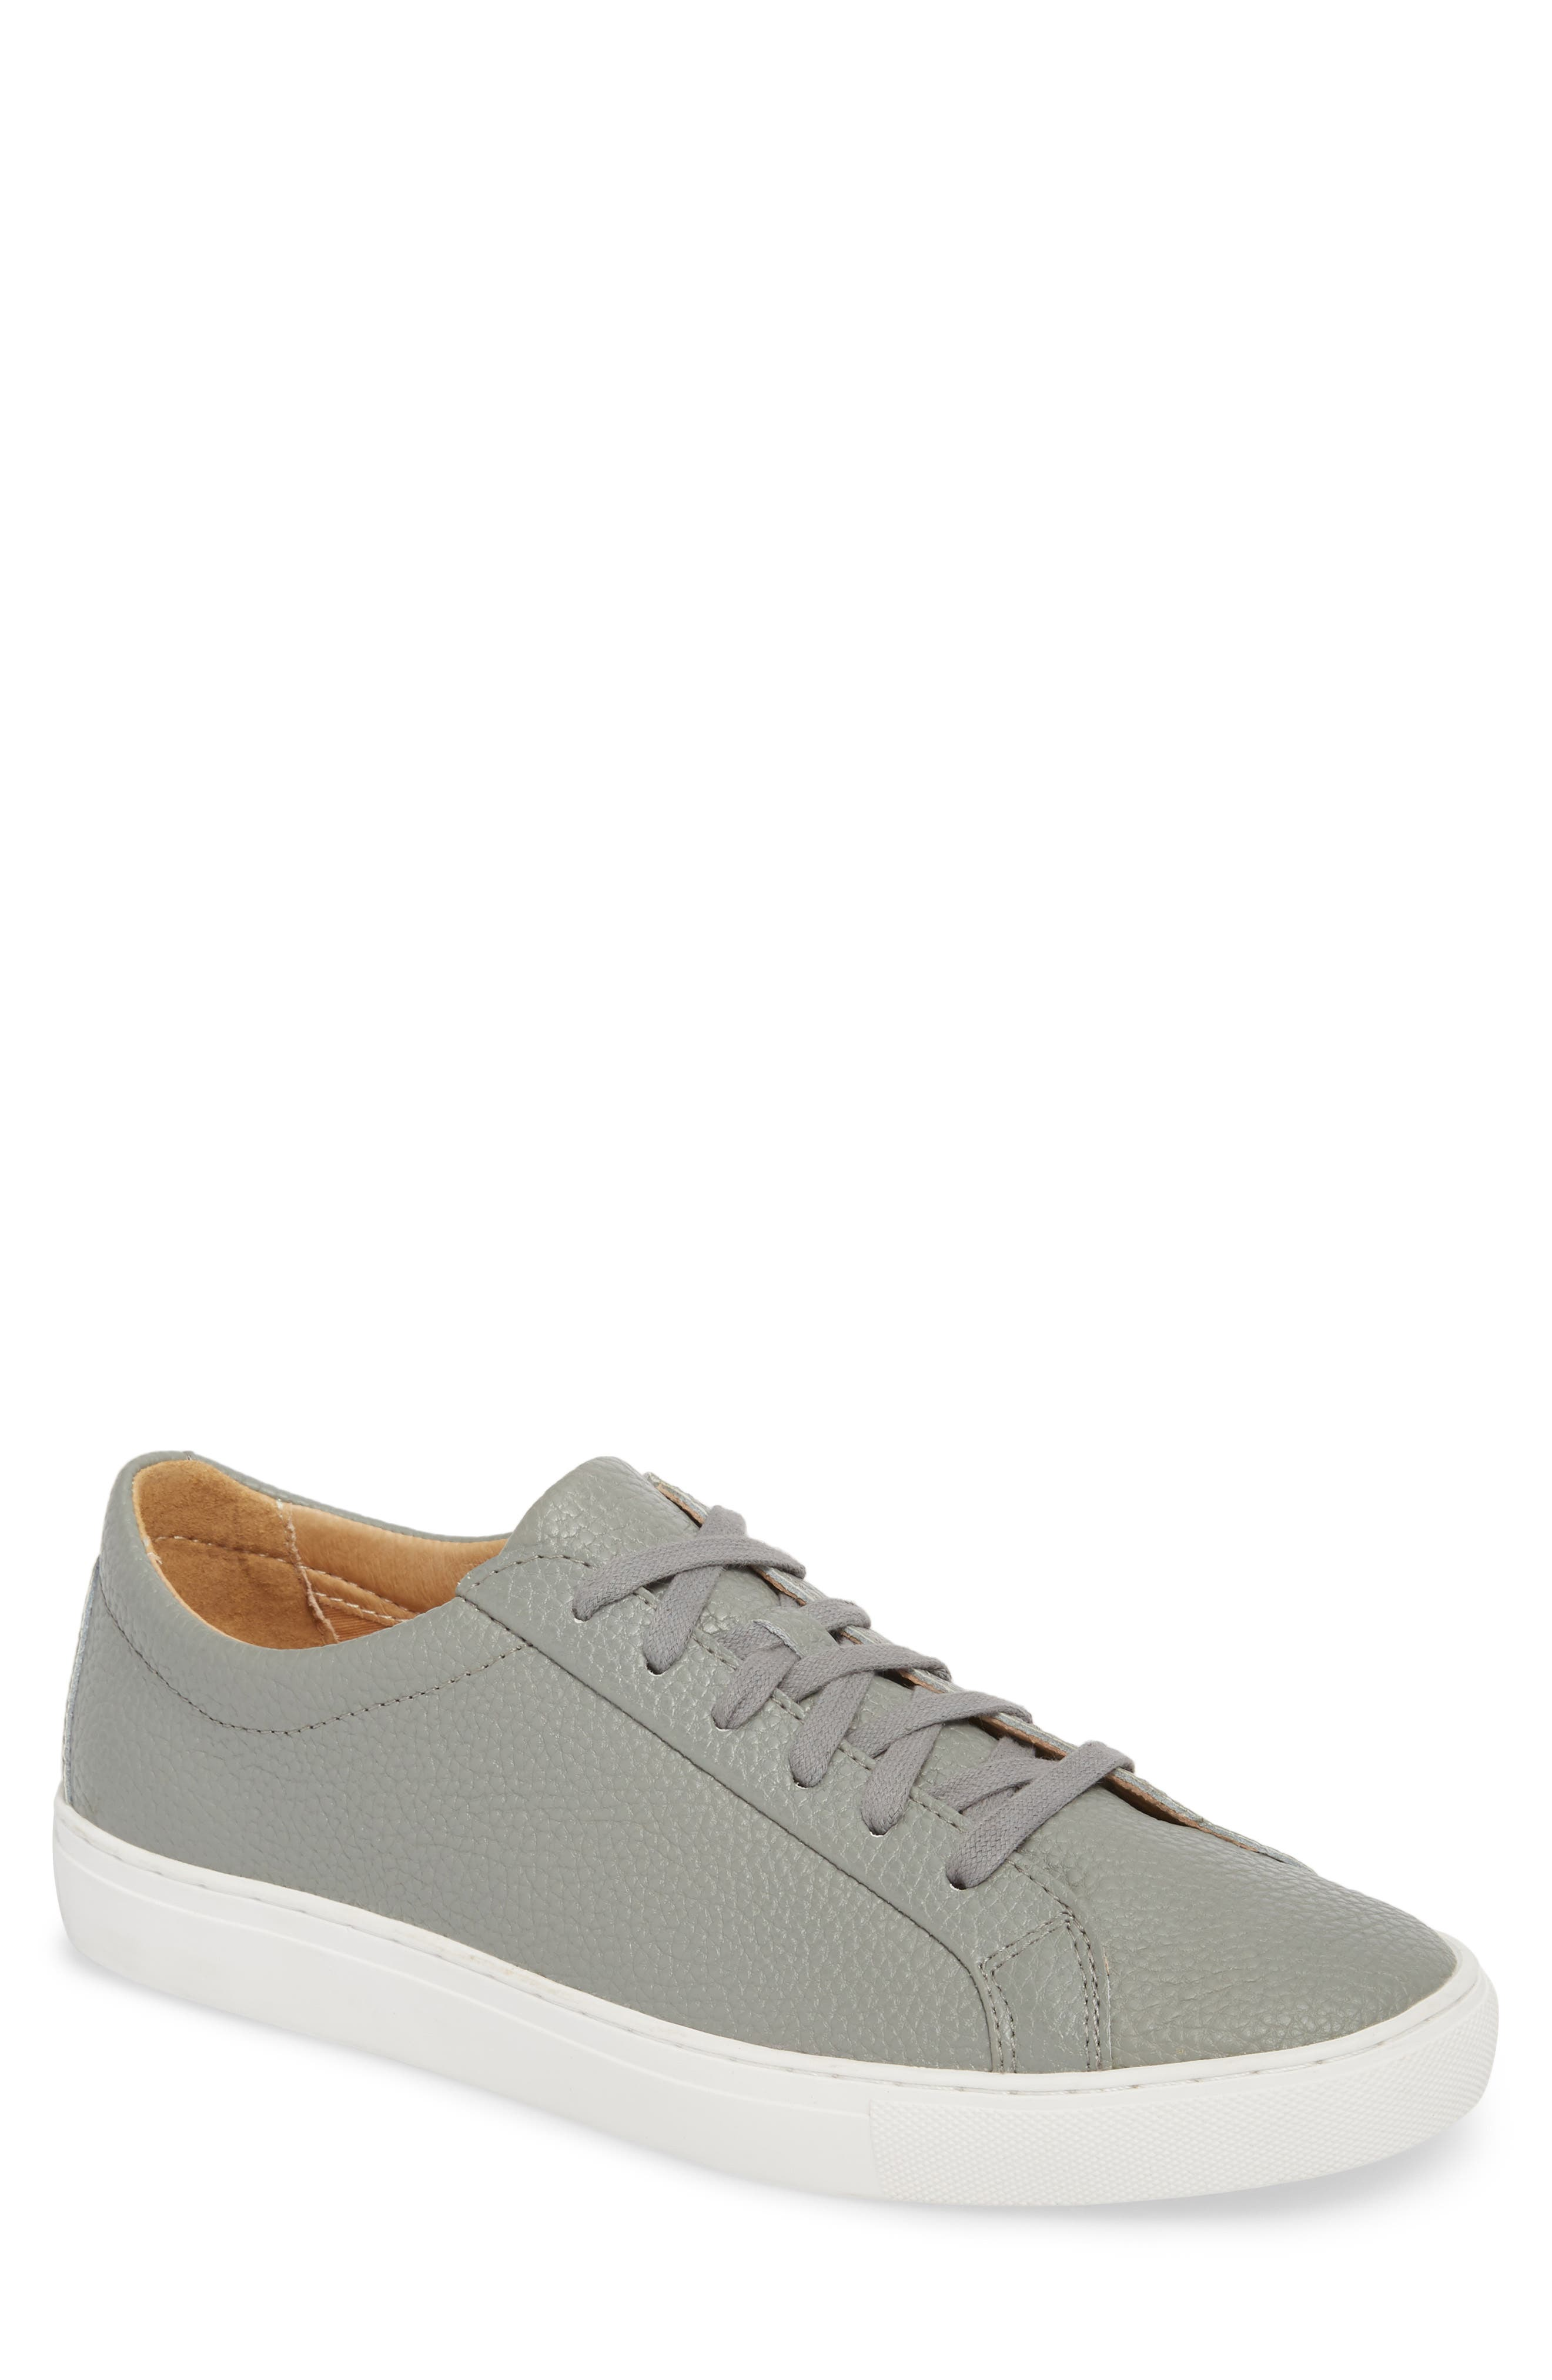 TCG, Kennedy Low Top Sneaker, Main thumbnail 1, color, RIVER ROCK LEATHER